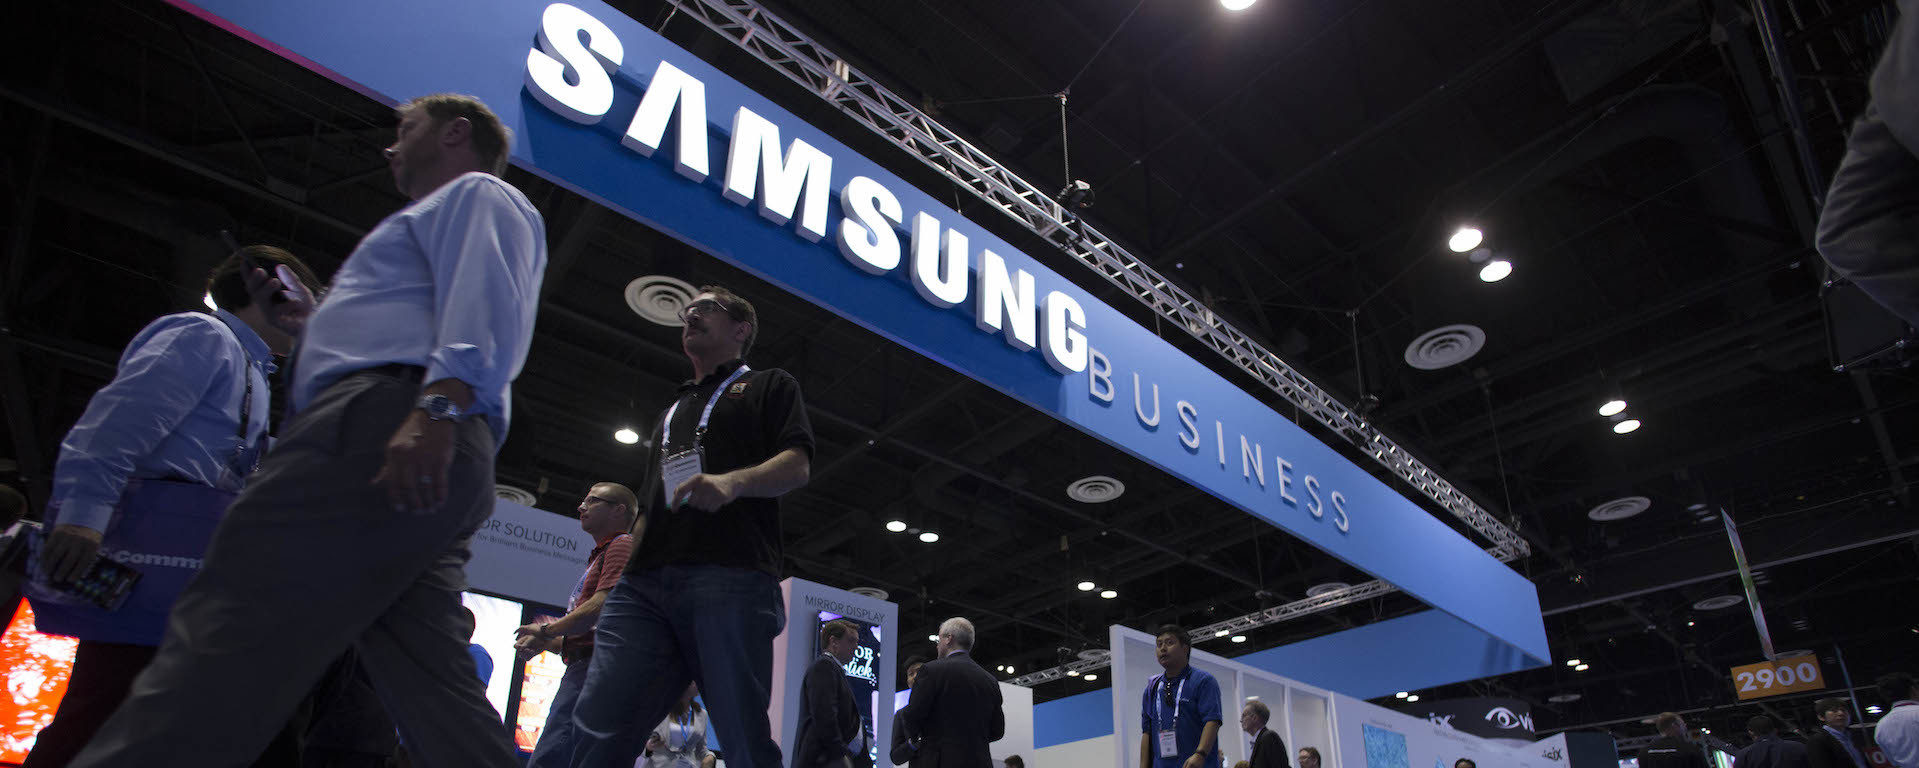 objectives of samsung Welcome to samsung about us page samsung electronics has grown into a global information technology leader, managing more than 200 subsidiaries around the world.